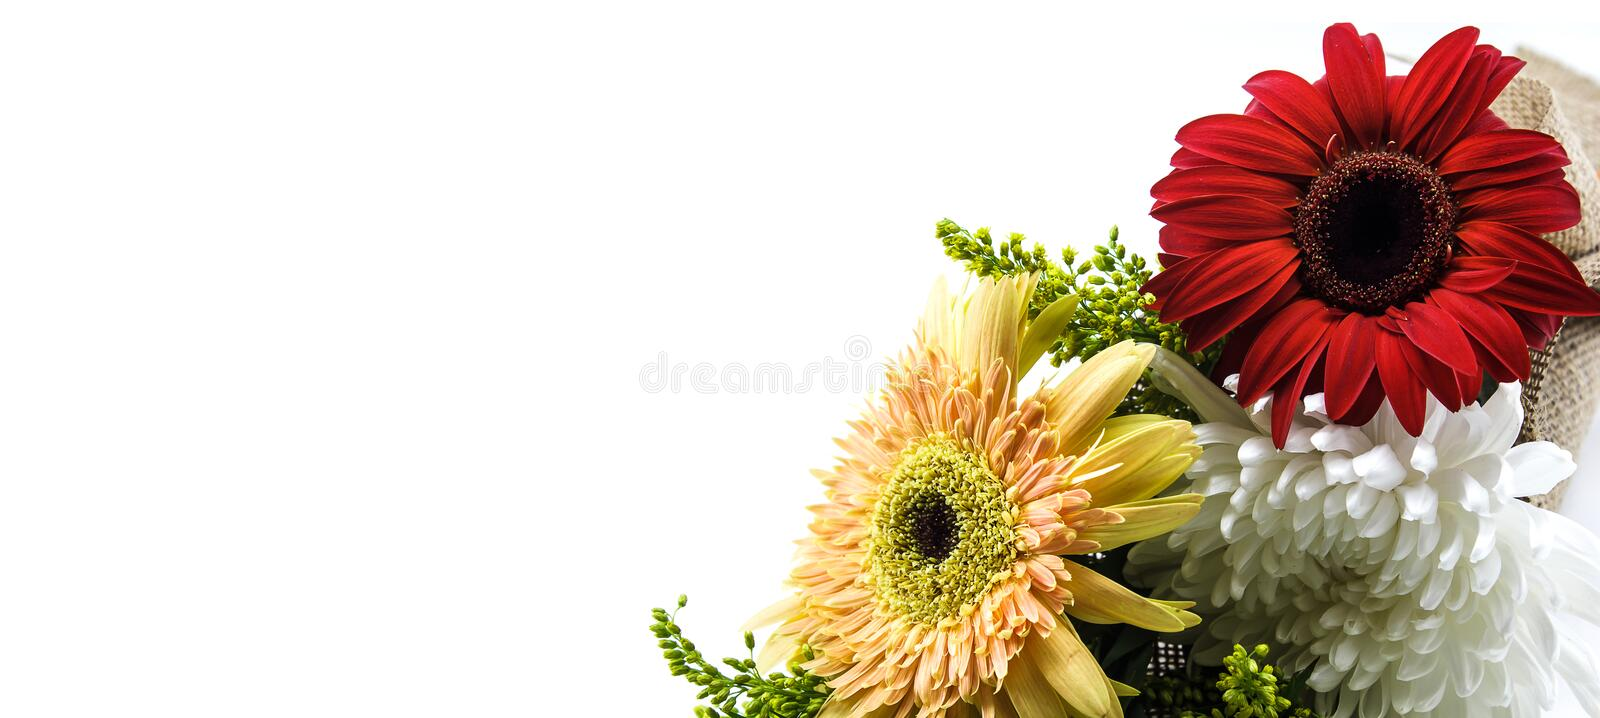 Flower and plant. On white background with copy space royalty free stock photo